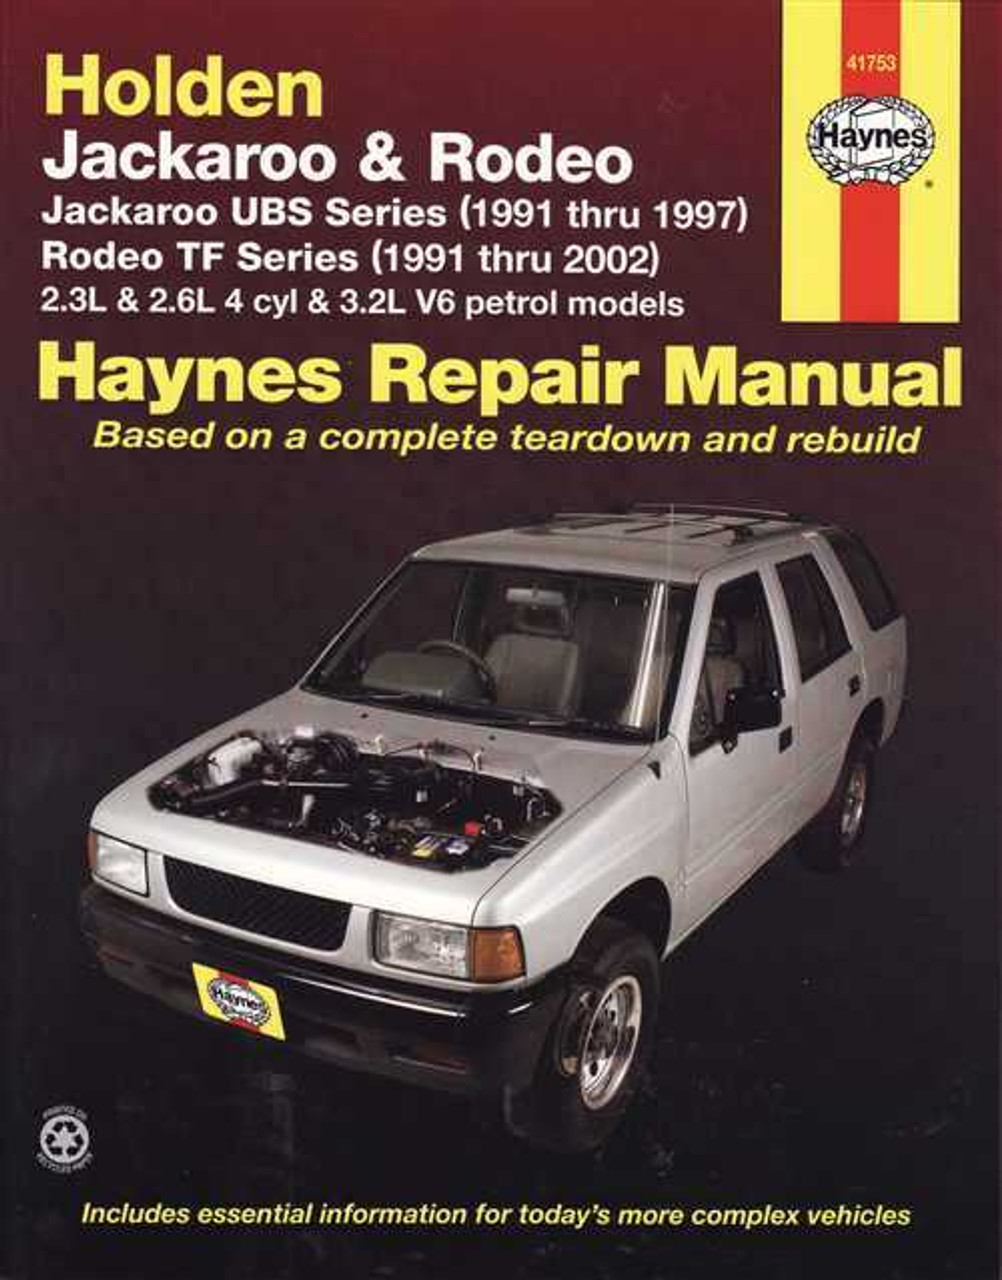 Holden Jackaroo UBS and Rodeo TF 1991 - 2002 Workshop Manual